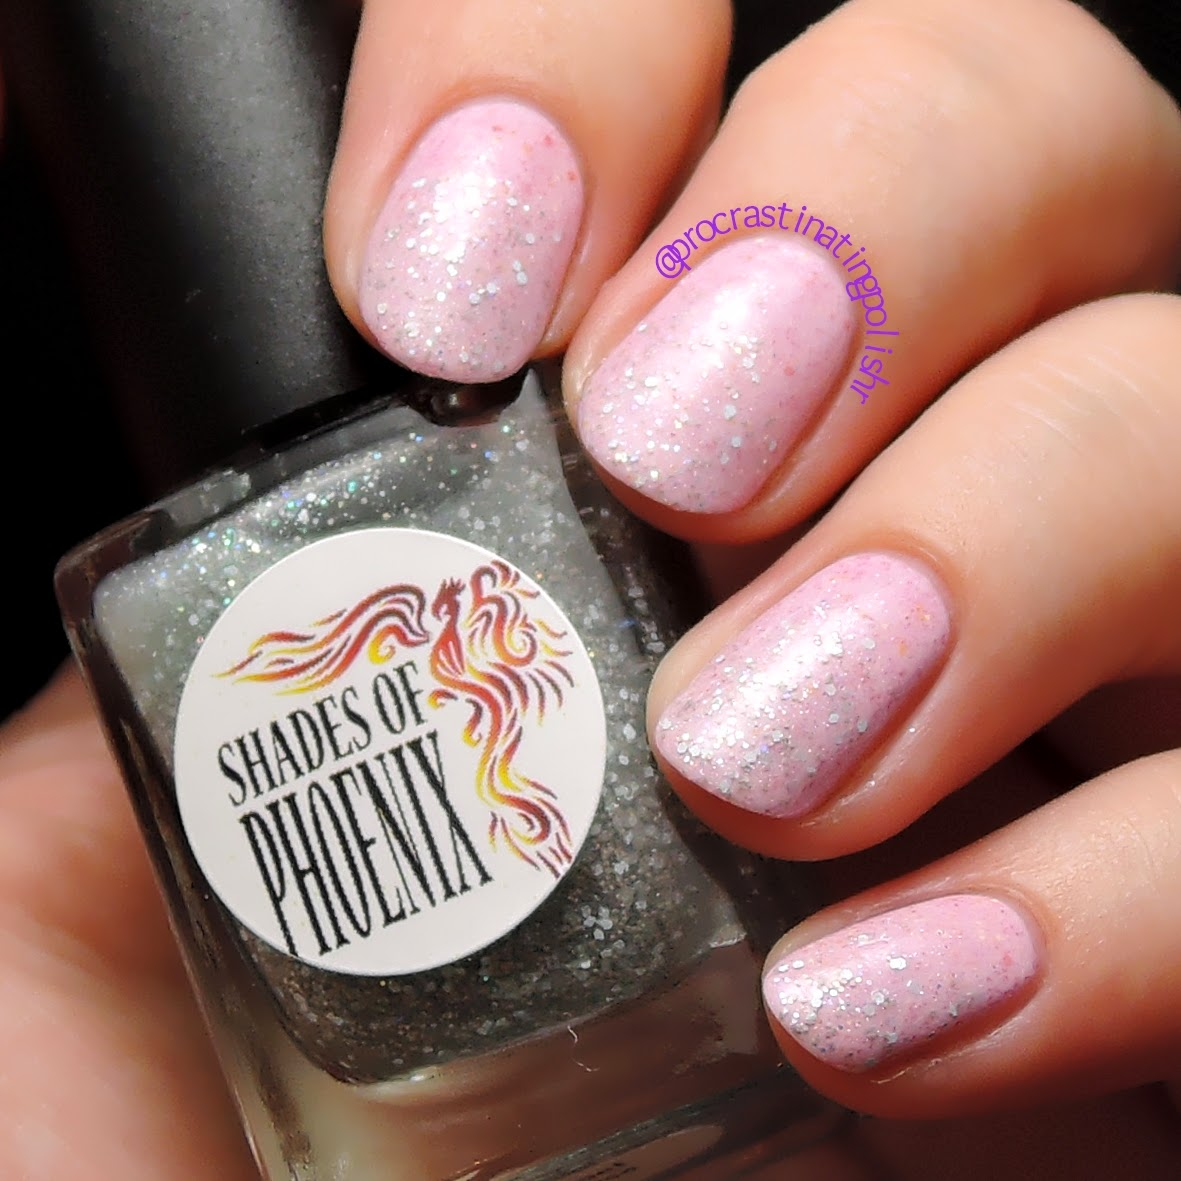 Shades of Phoenix - Tinsel Tease & Holly Crush glitter gradient